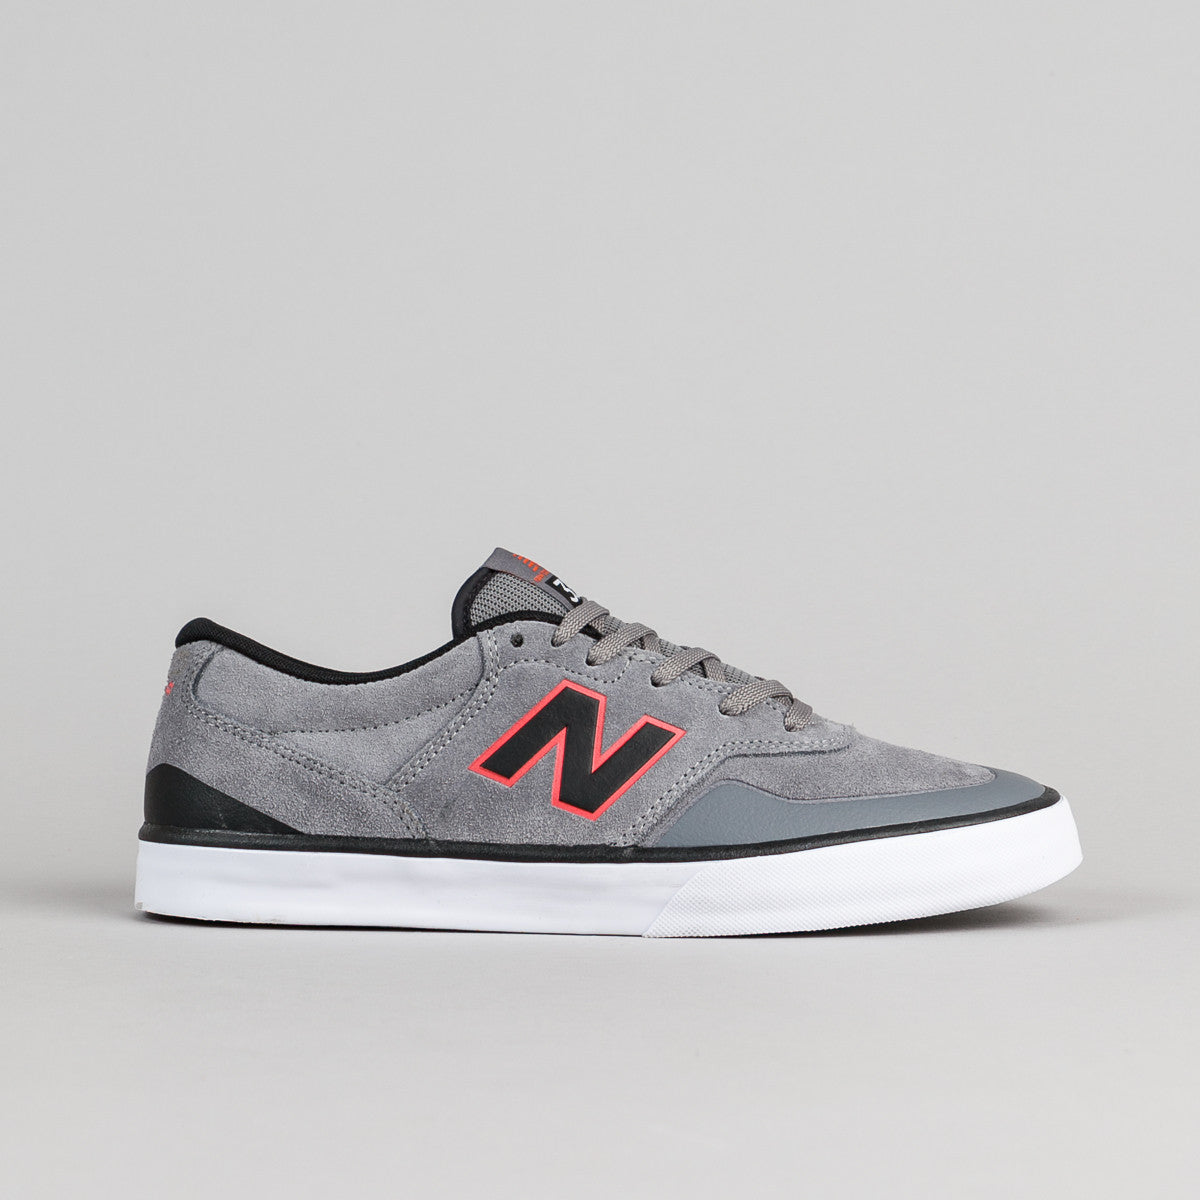 New Balance Numeric Arto 358 Shoes - Grey / Black